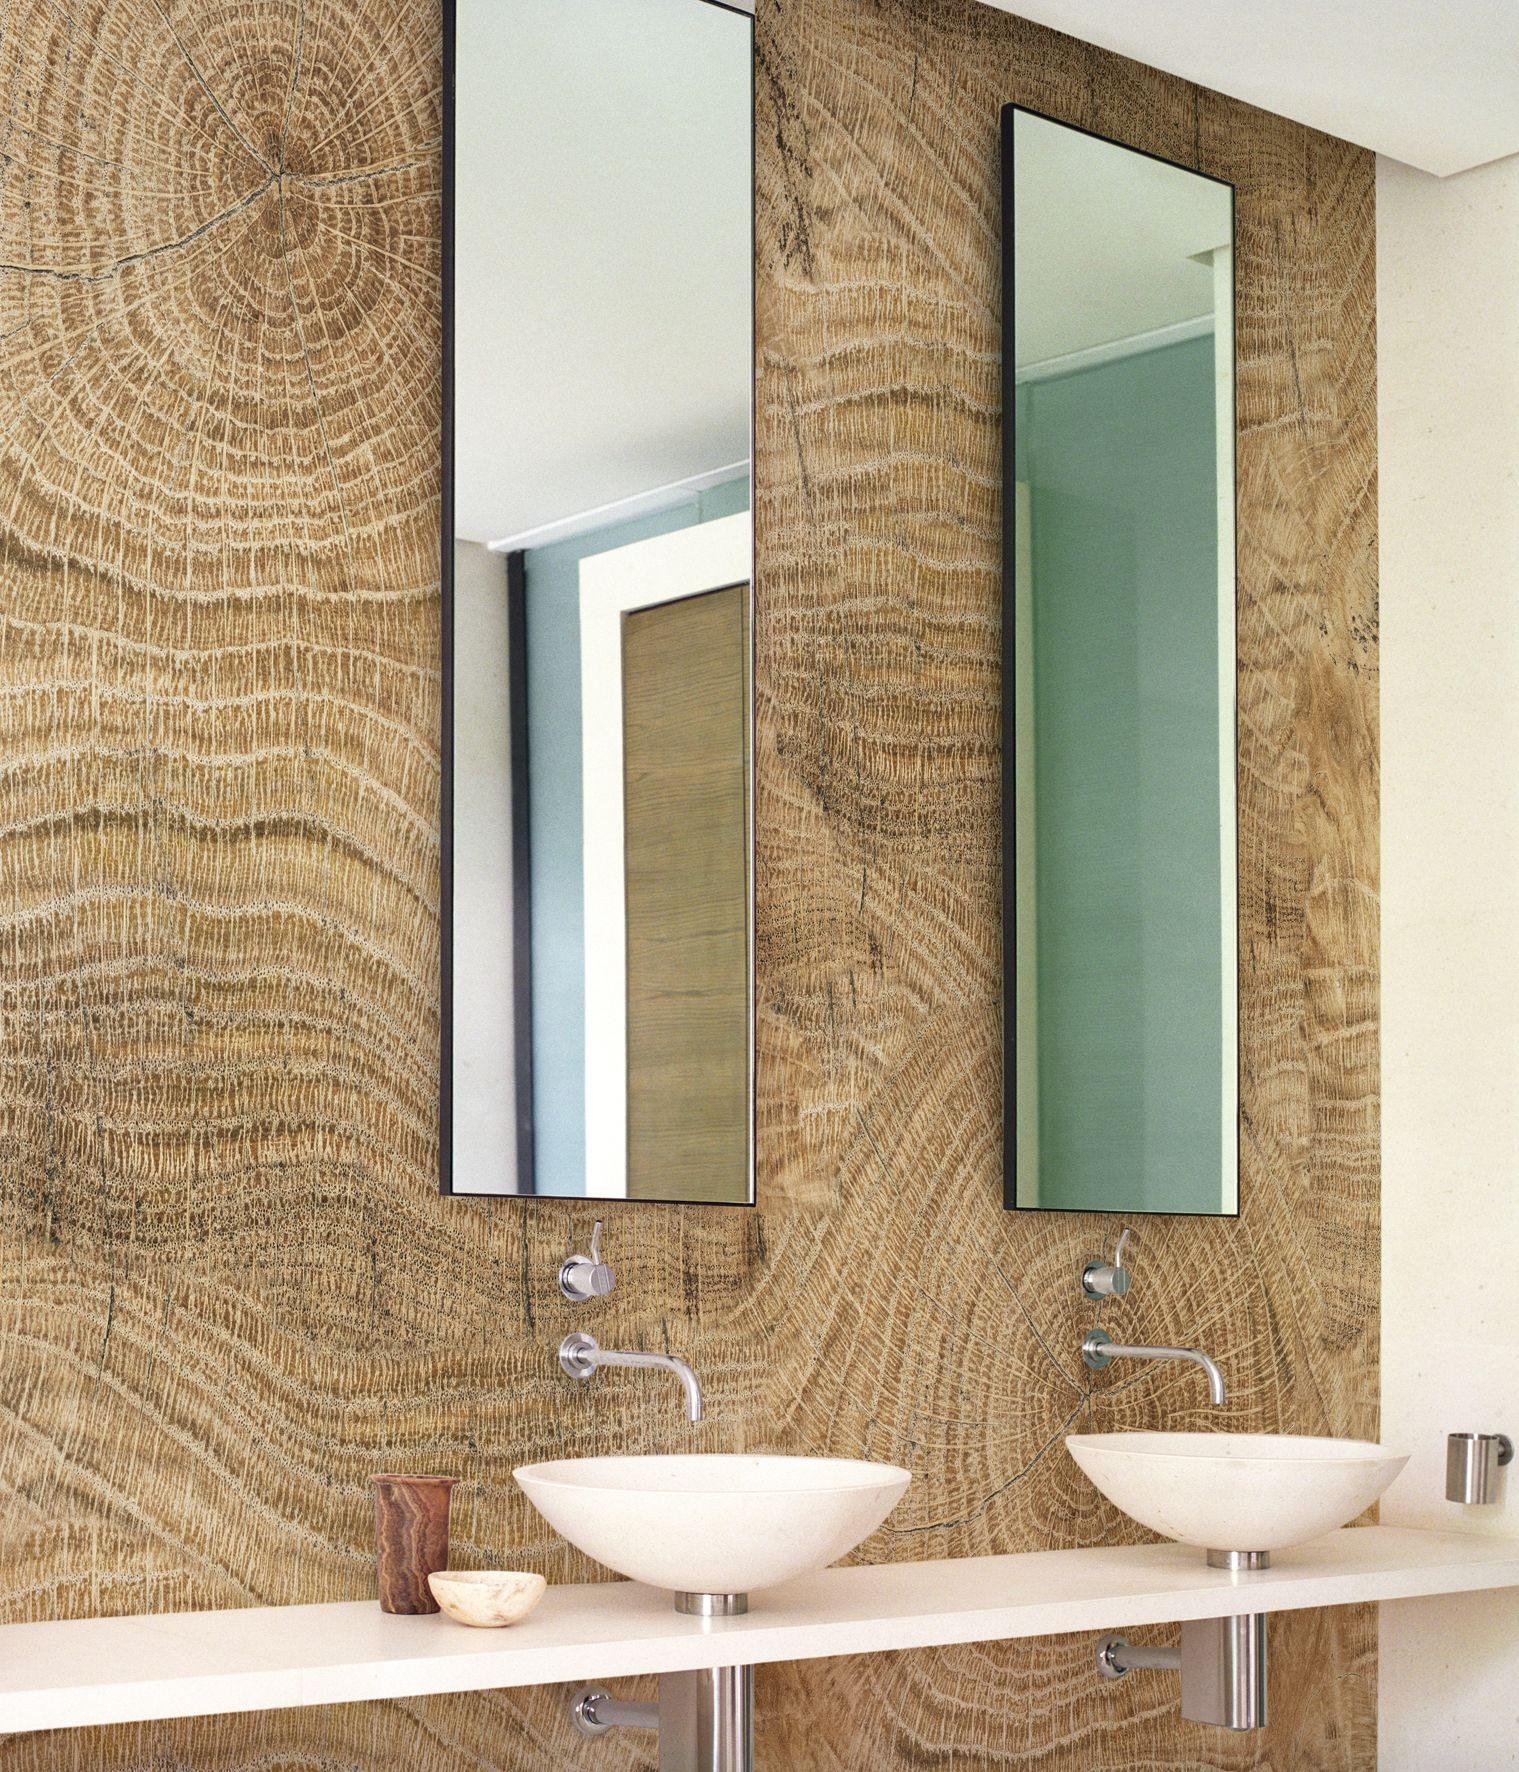 Wood Effect Bathroom Wallpaper Life Lines Wet System A 13 Collection By Wall Deca Design Christian Ben Bathroom Wallpaper Wall Deco Contemporary Wallpaper